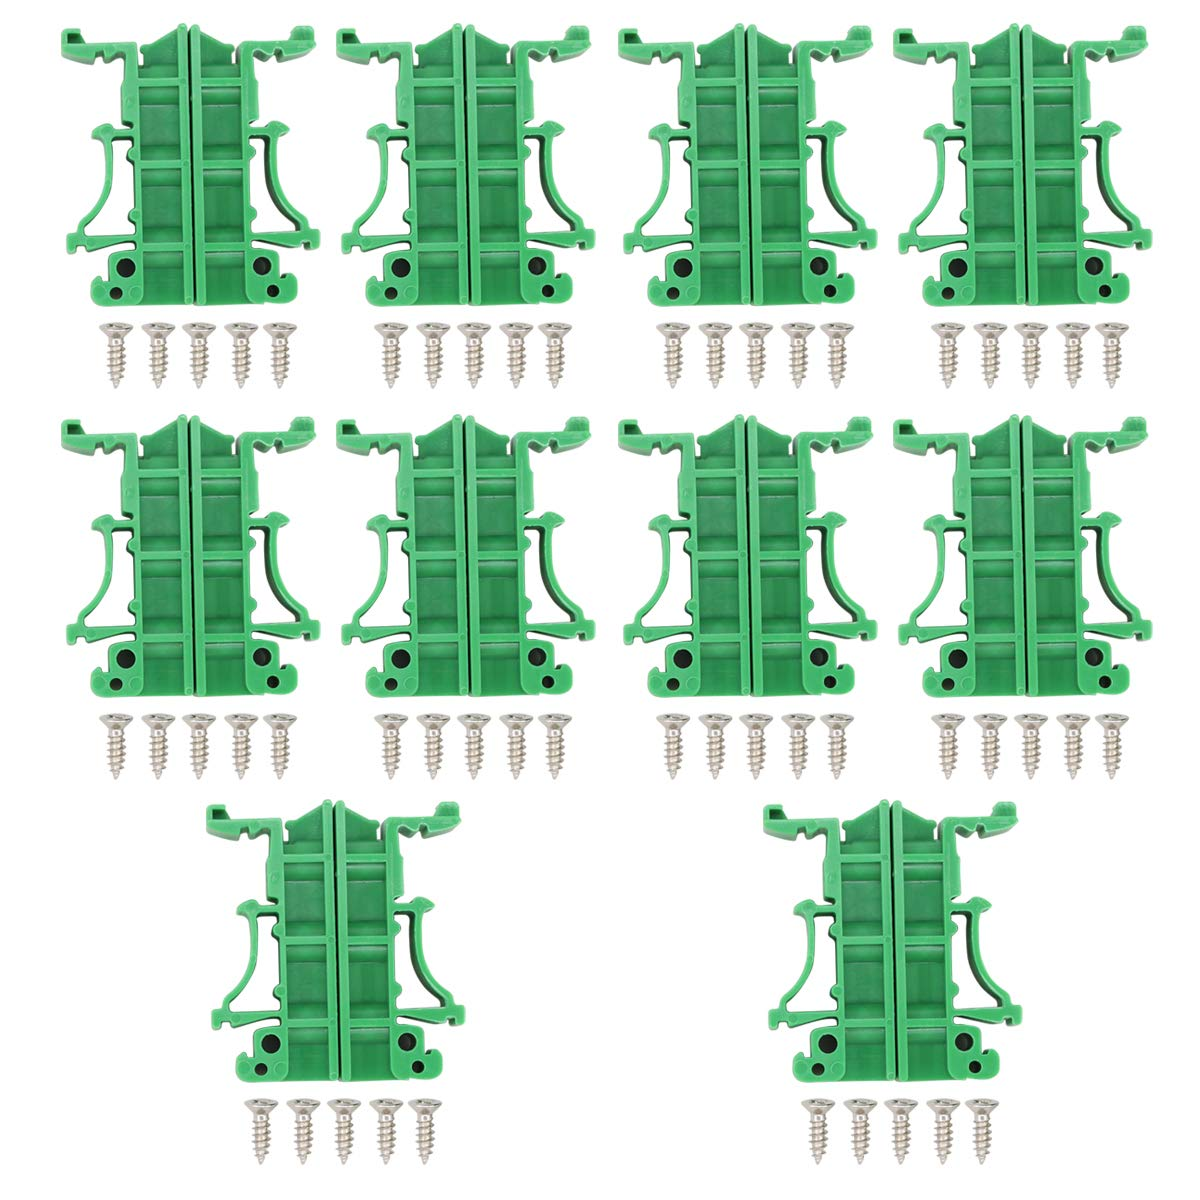 NIANNIAN PCB DIN Rail Mounting Adaptateur Circuit Board Holder Carrier Clips 35 mm